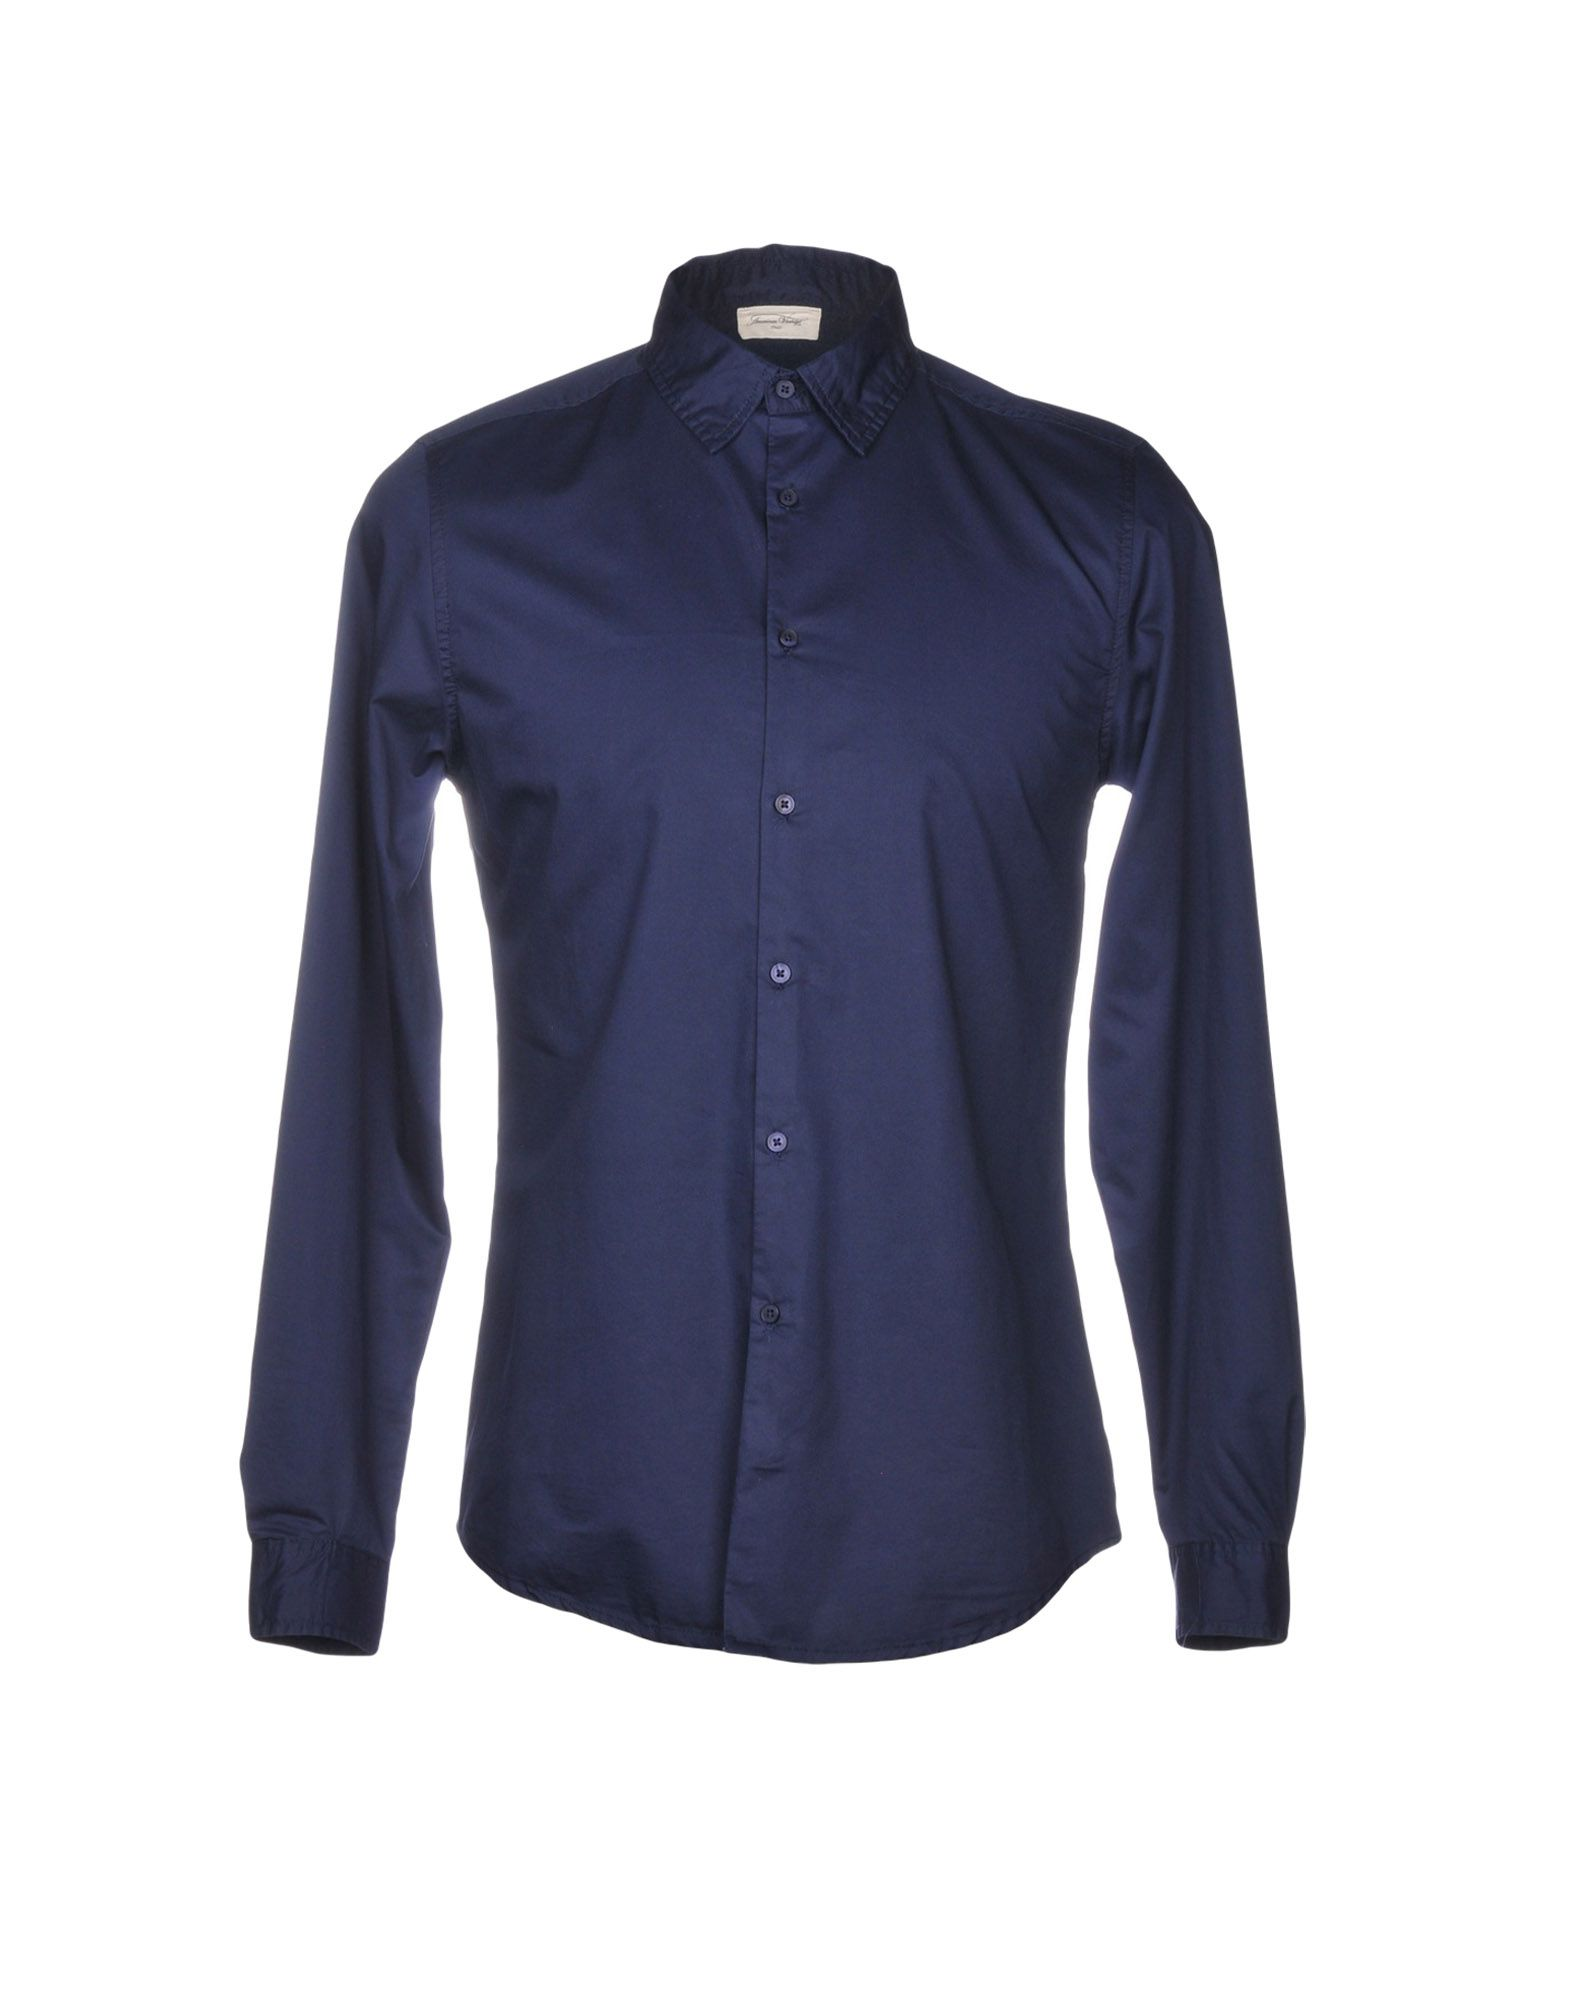 AMERICAN VINTAGE Solid Color Shirt in Blue